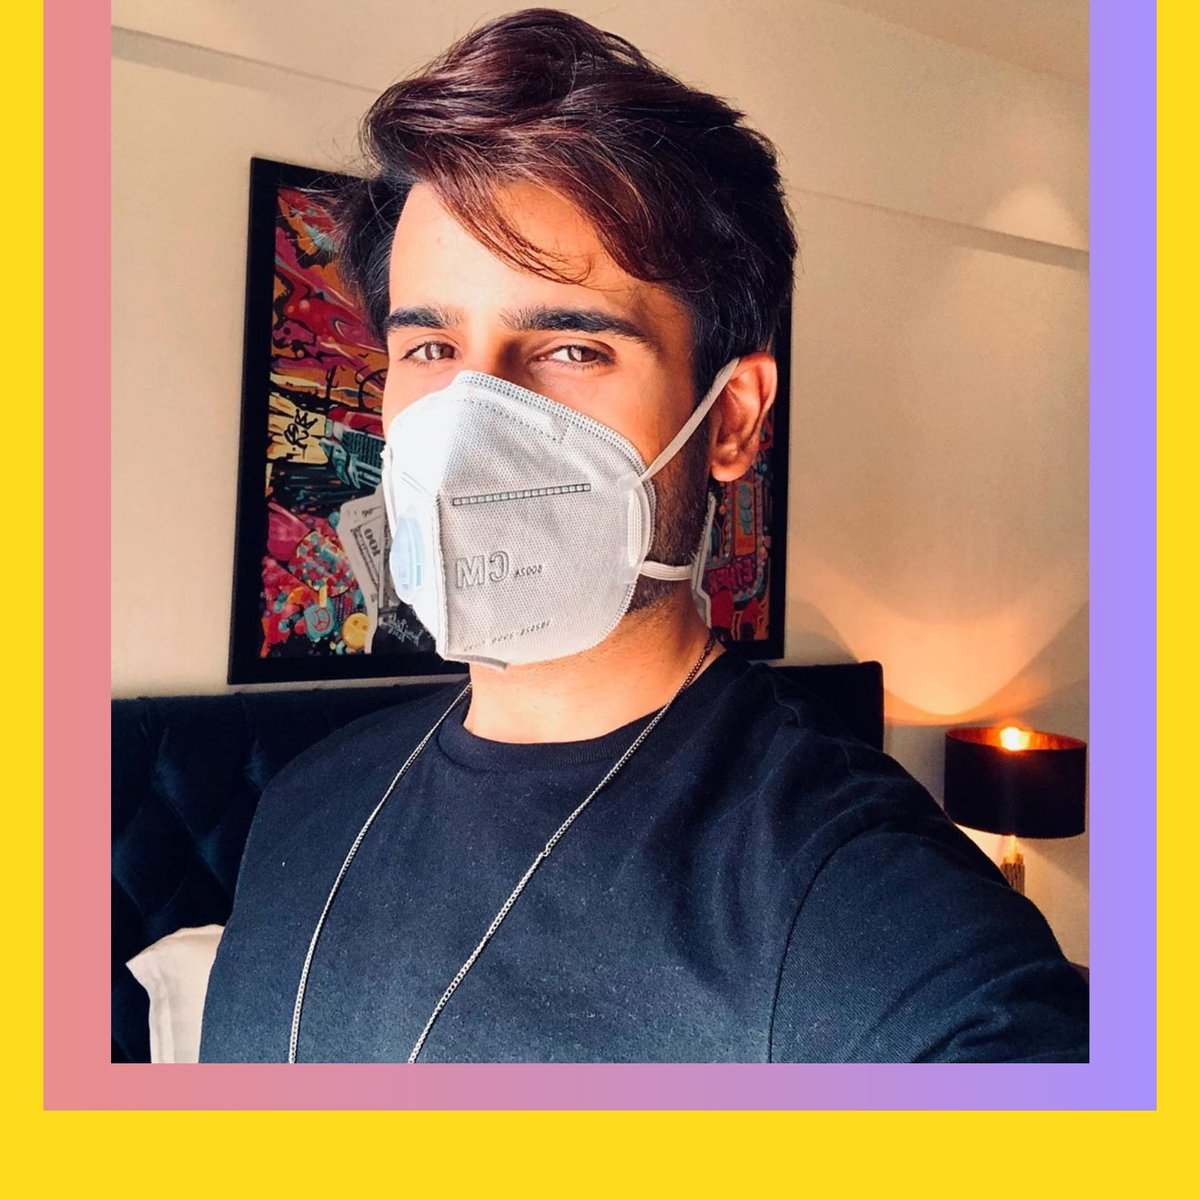 .@karantacker reminds us of wearing a mask  Are you'll wearing it?  #KaranTacker #Tellywood #StayHome #StayHomeStaySafe #PopDiariespic.twitter.com/dqhFBqdhiI